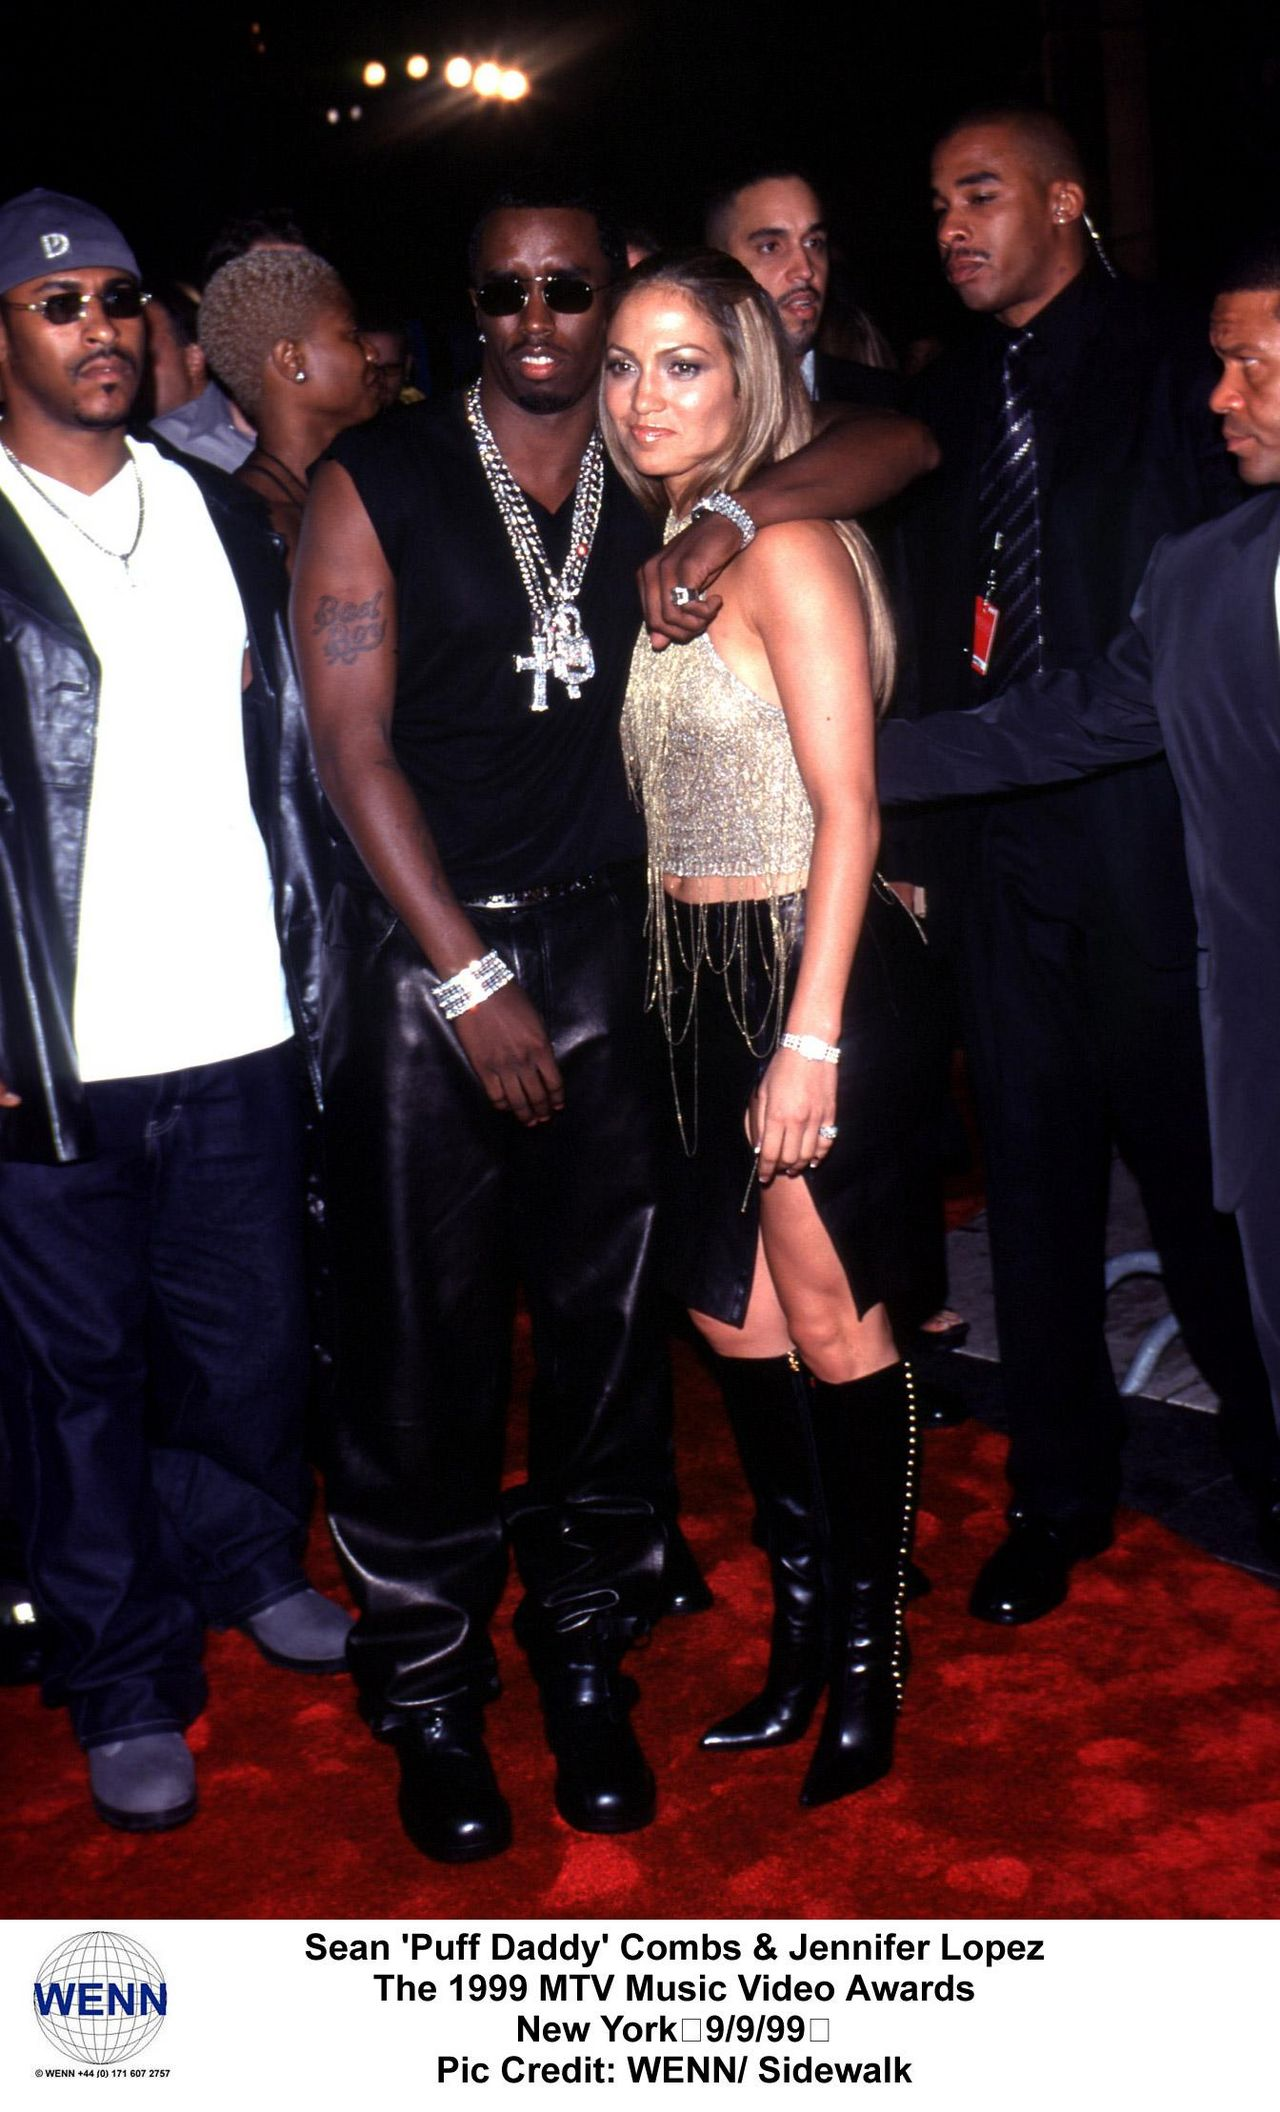 Jennifer Lopez Images 1999 Mtv Vma HD Wallpaper And Background Photos